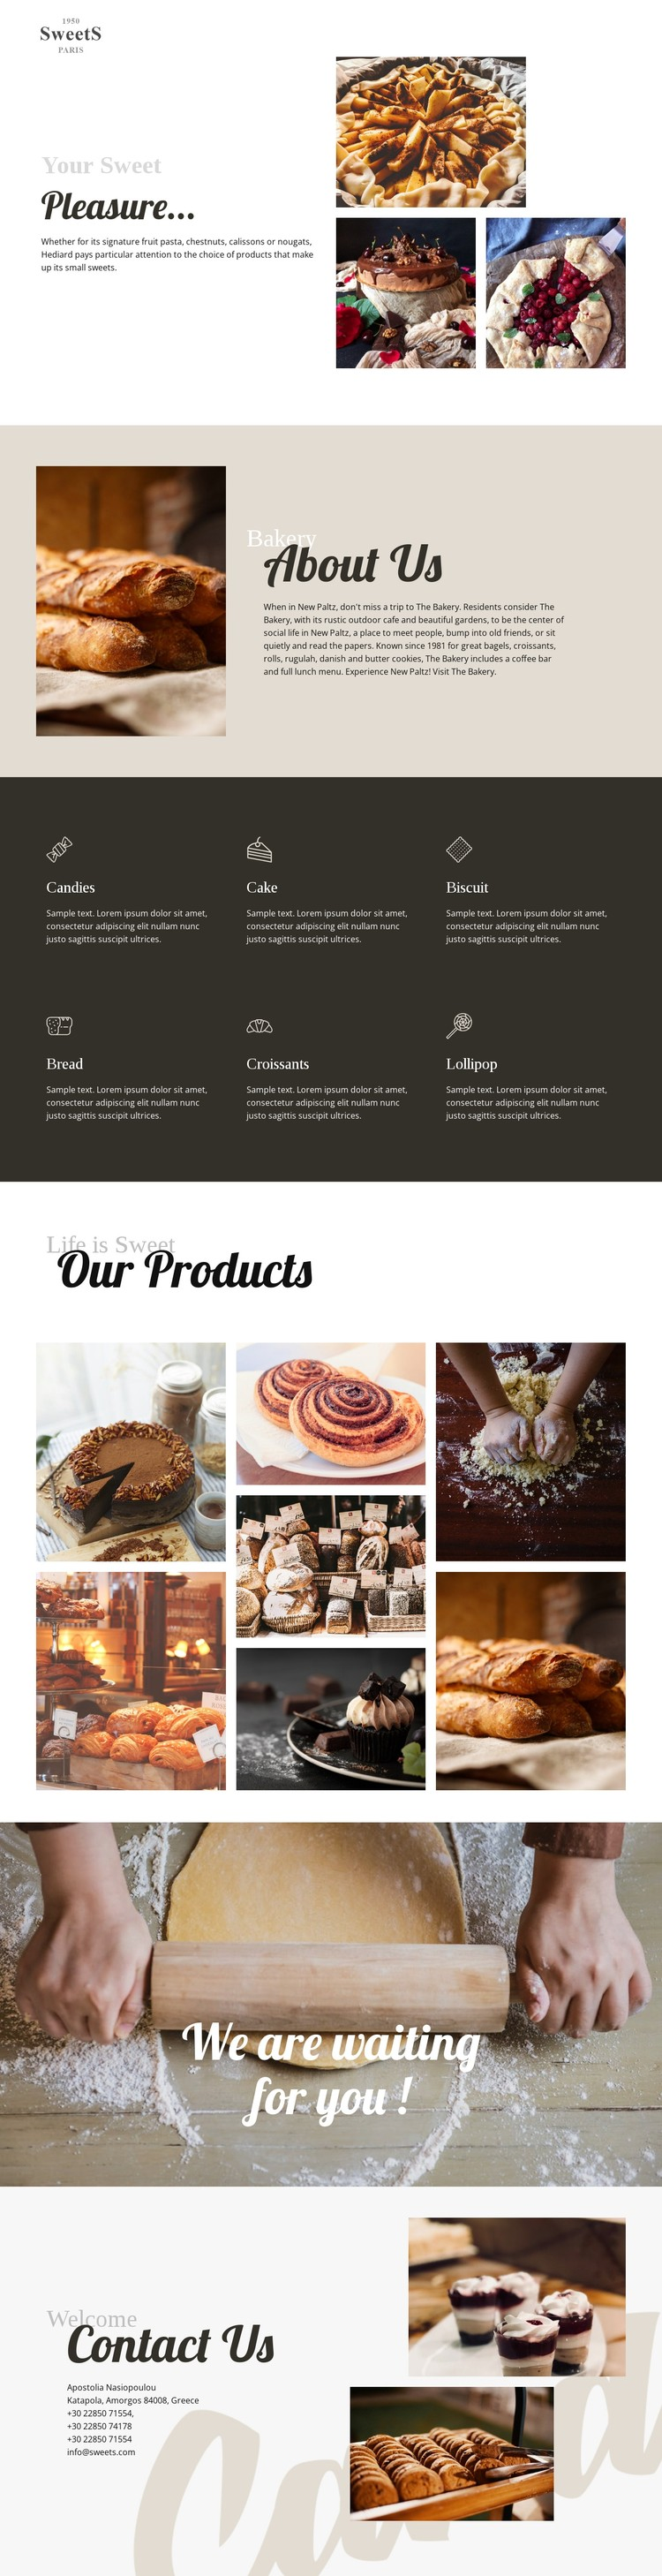 Cakes and baking food CSS Template